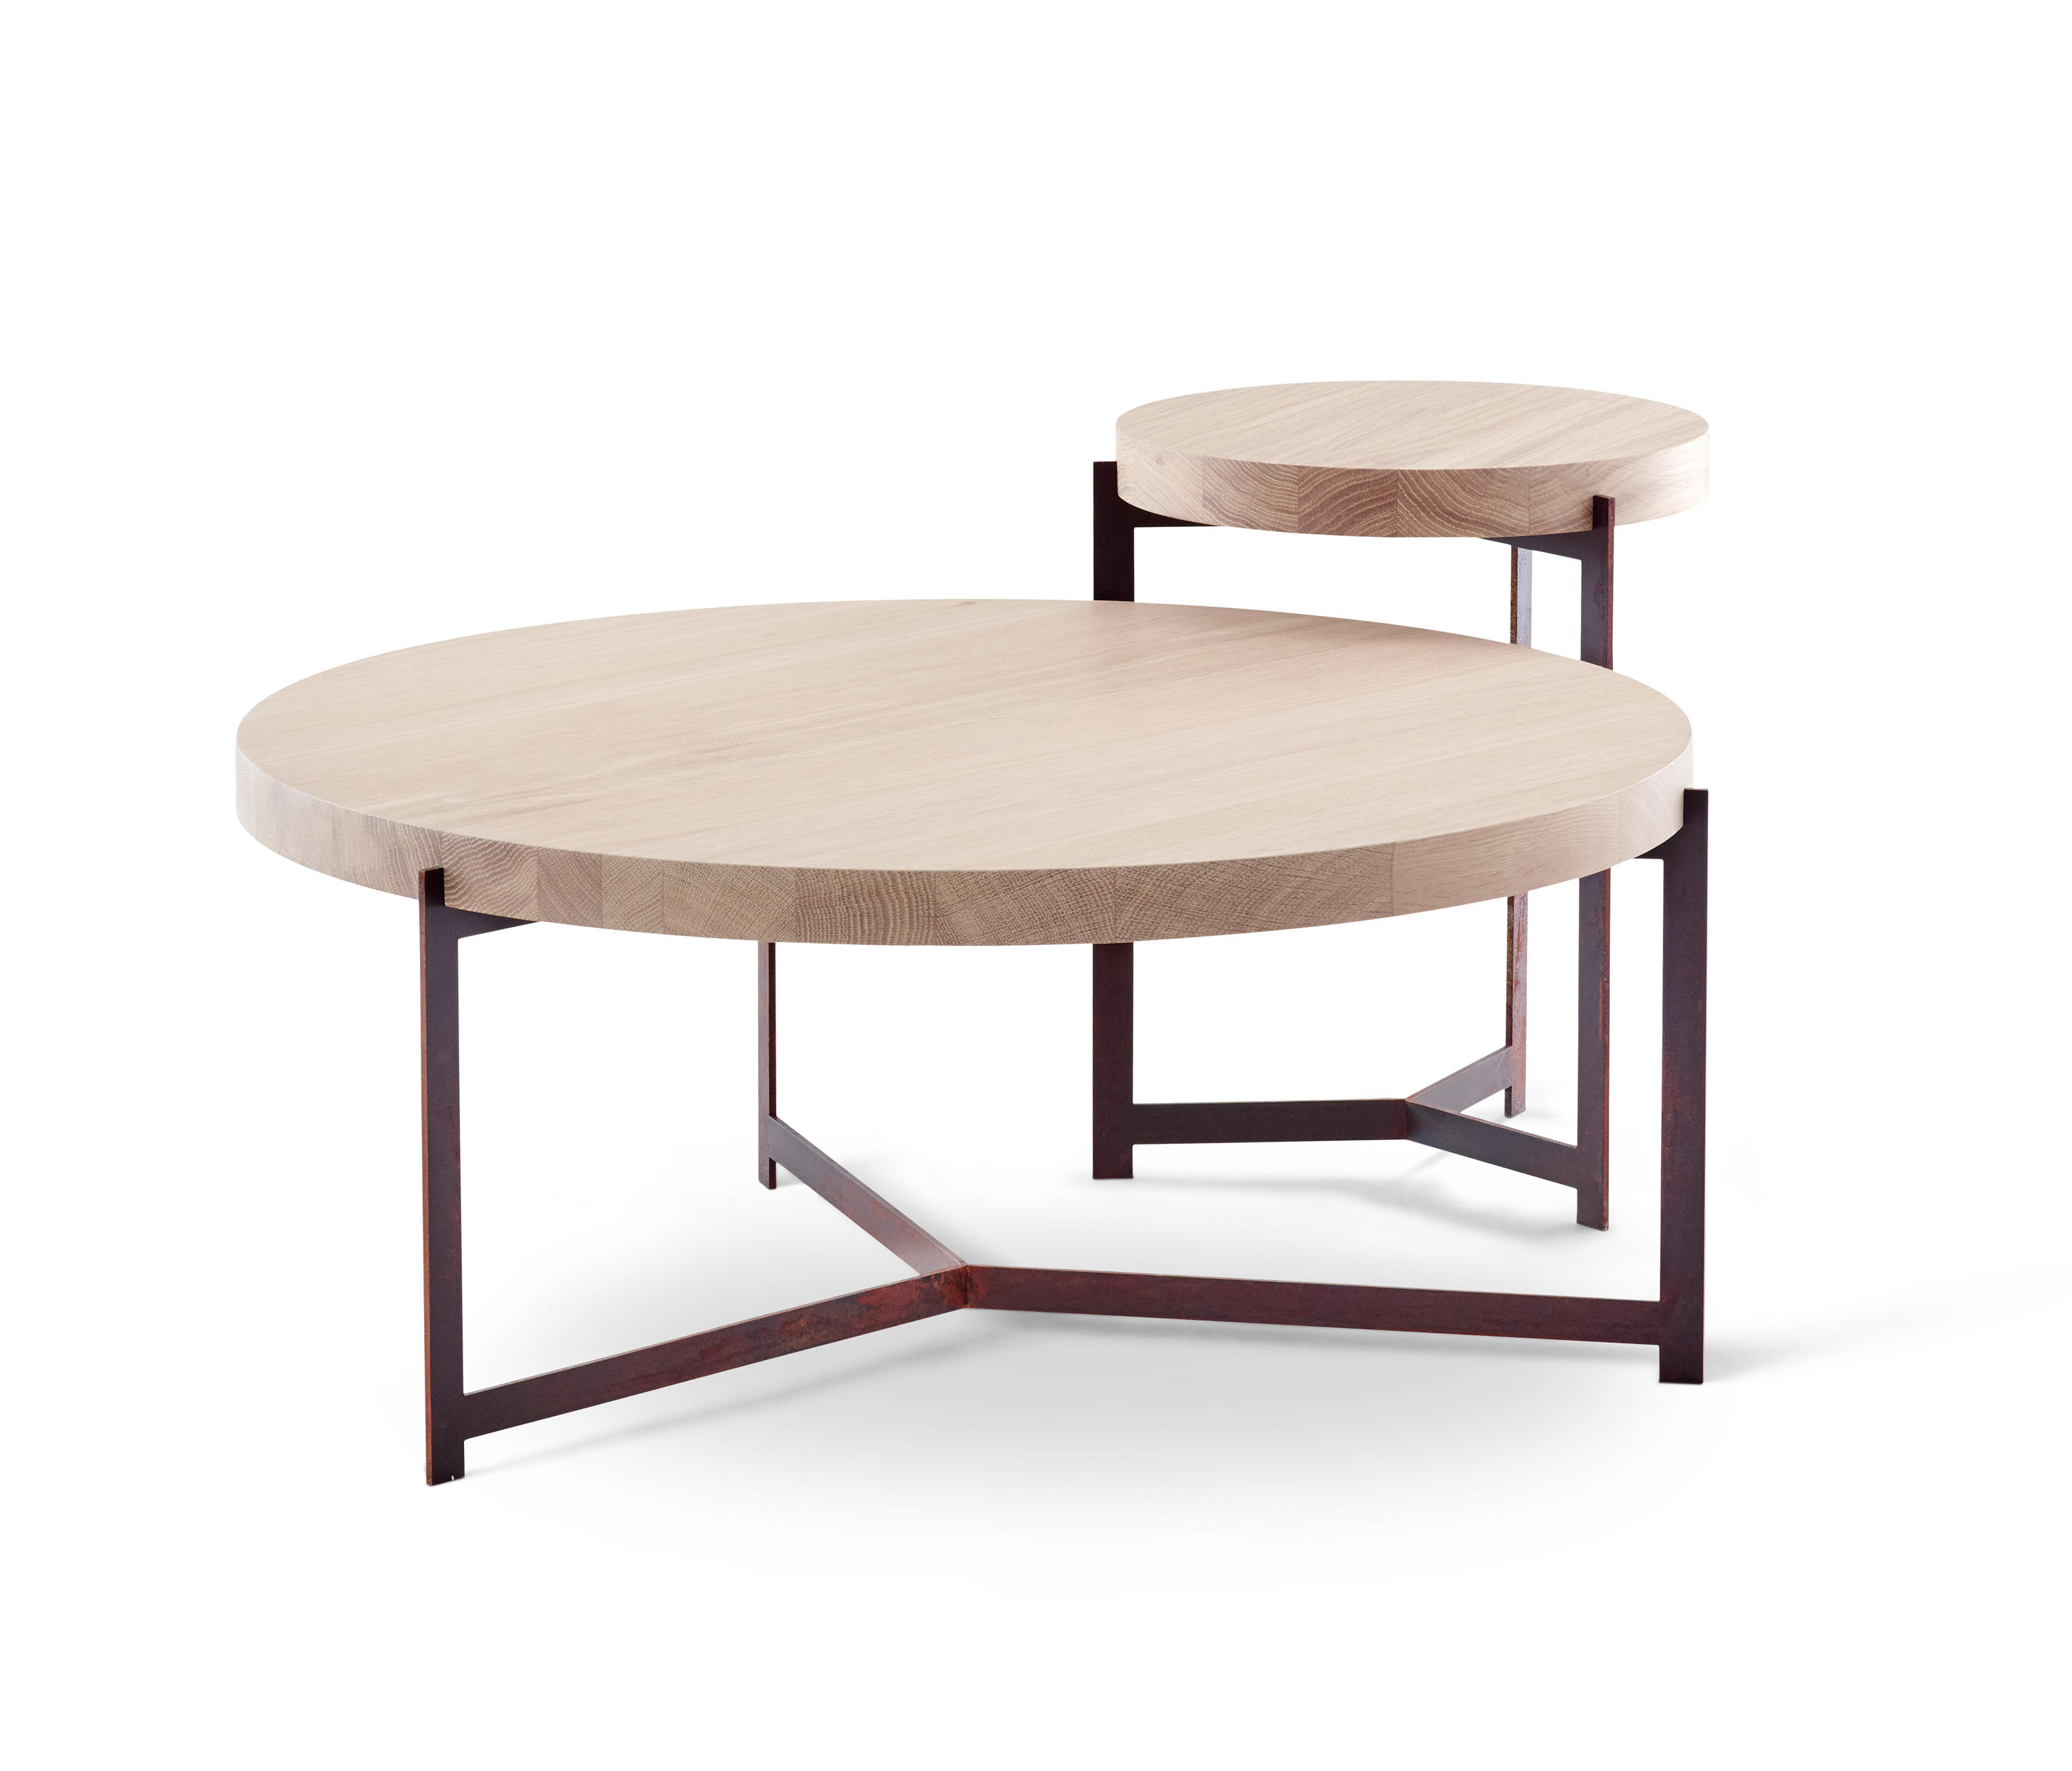 Plateau high side tables from dk3 architonic for Plateau table